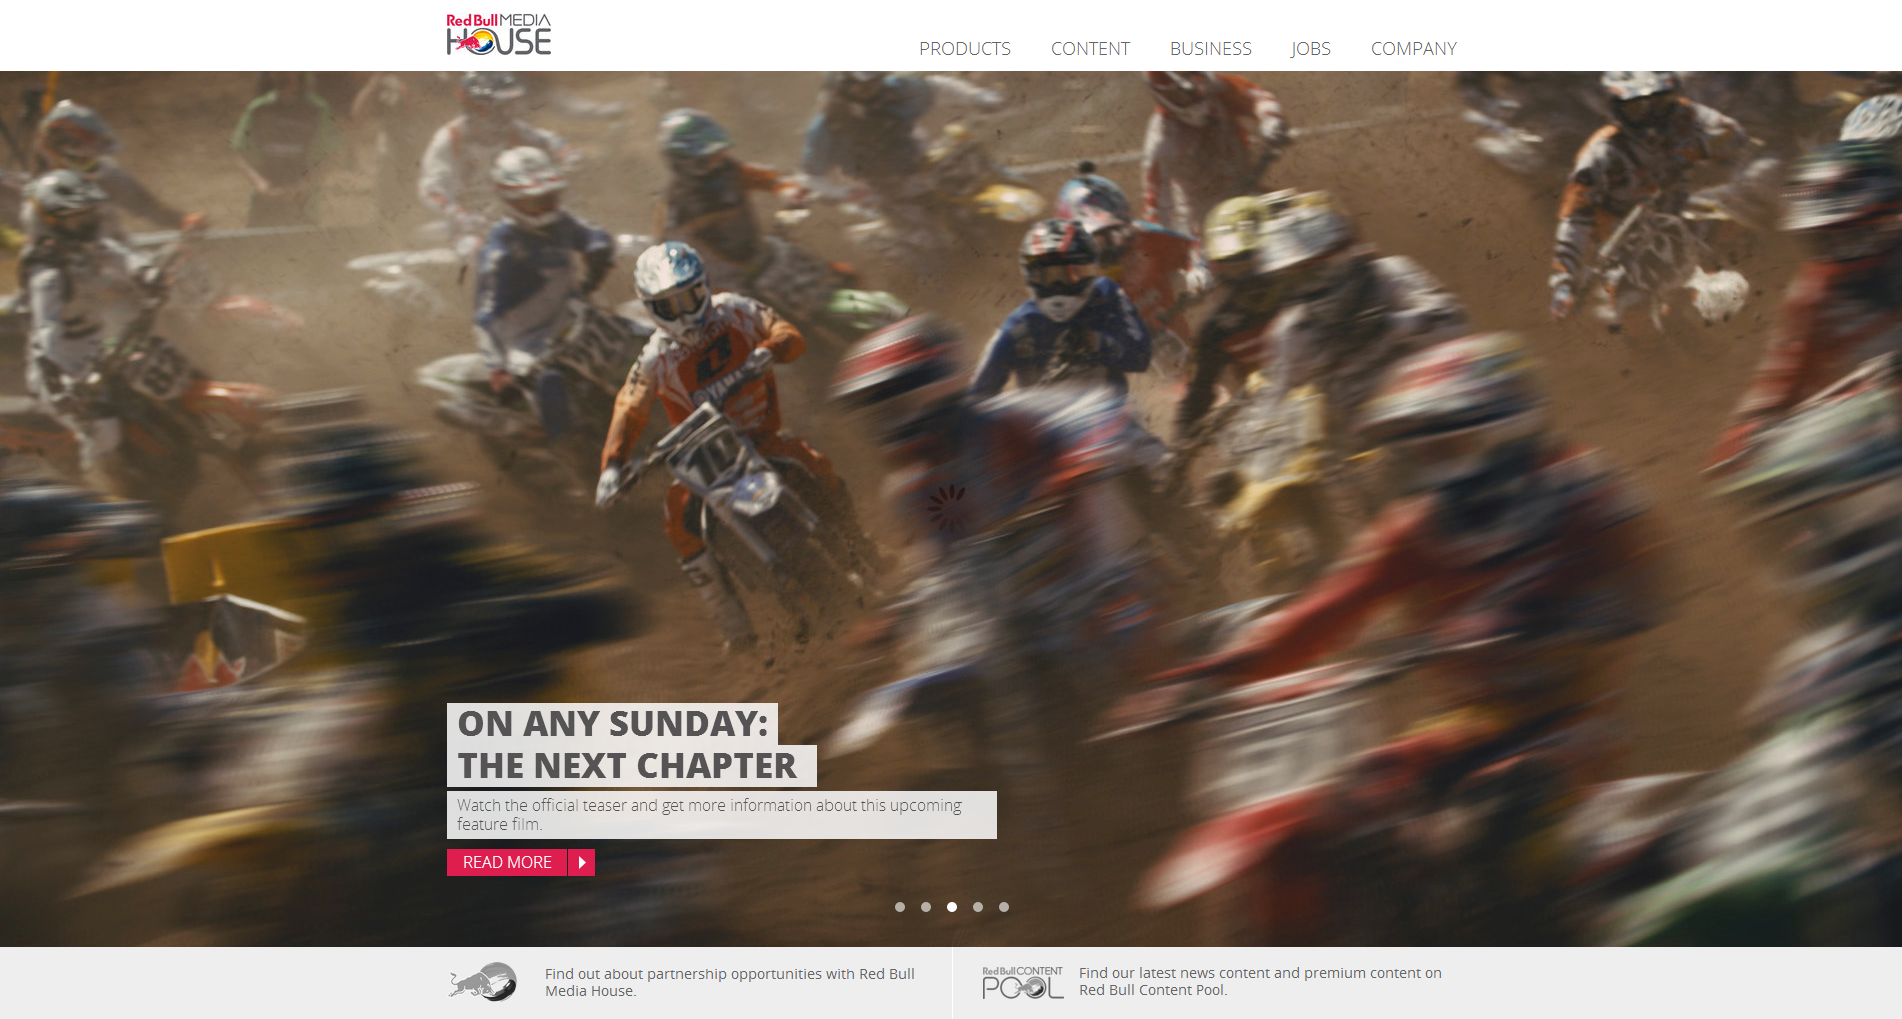 Red Bull Media House Website